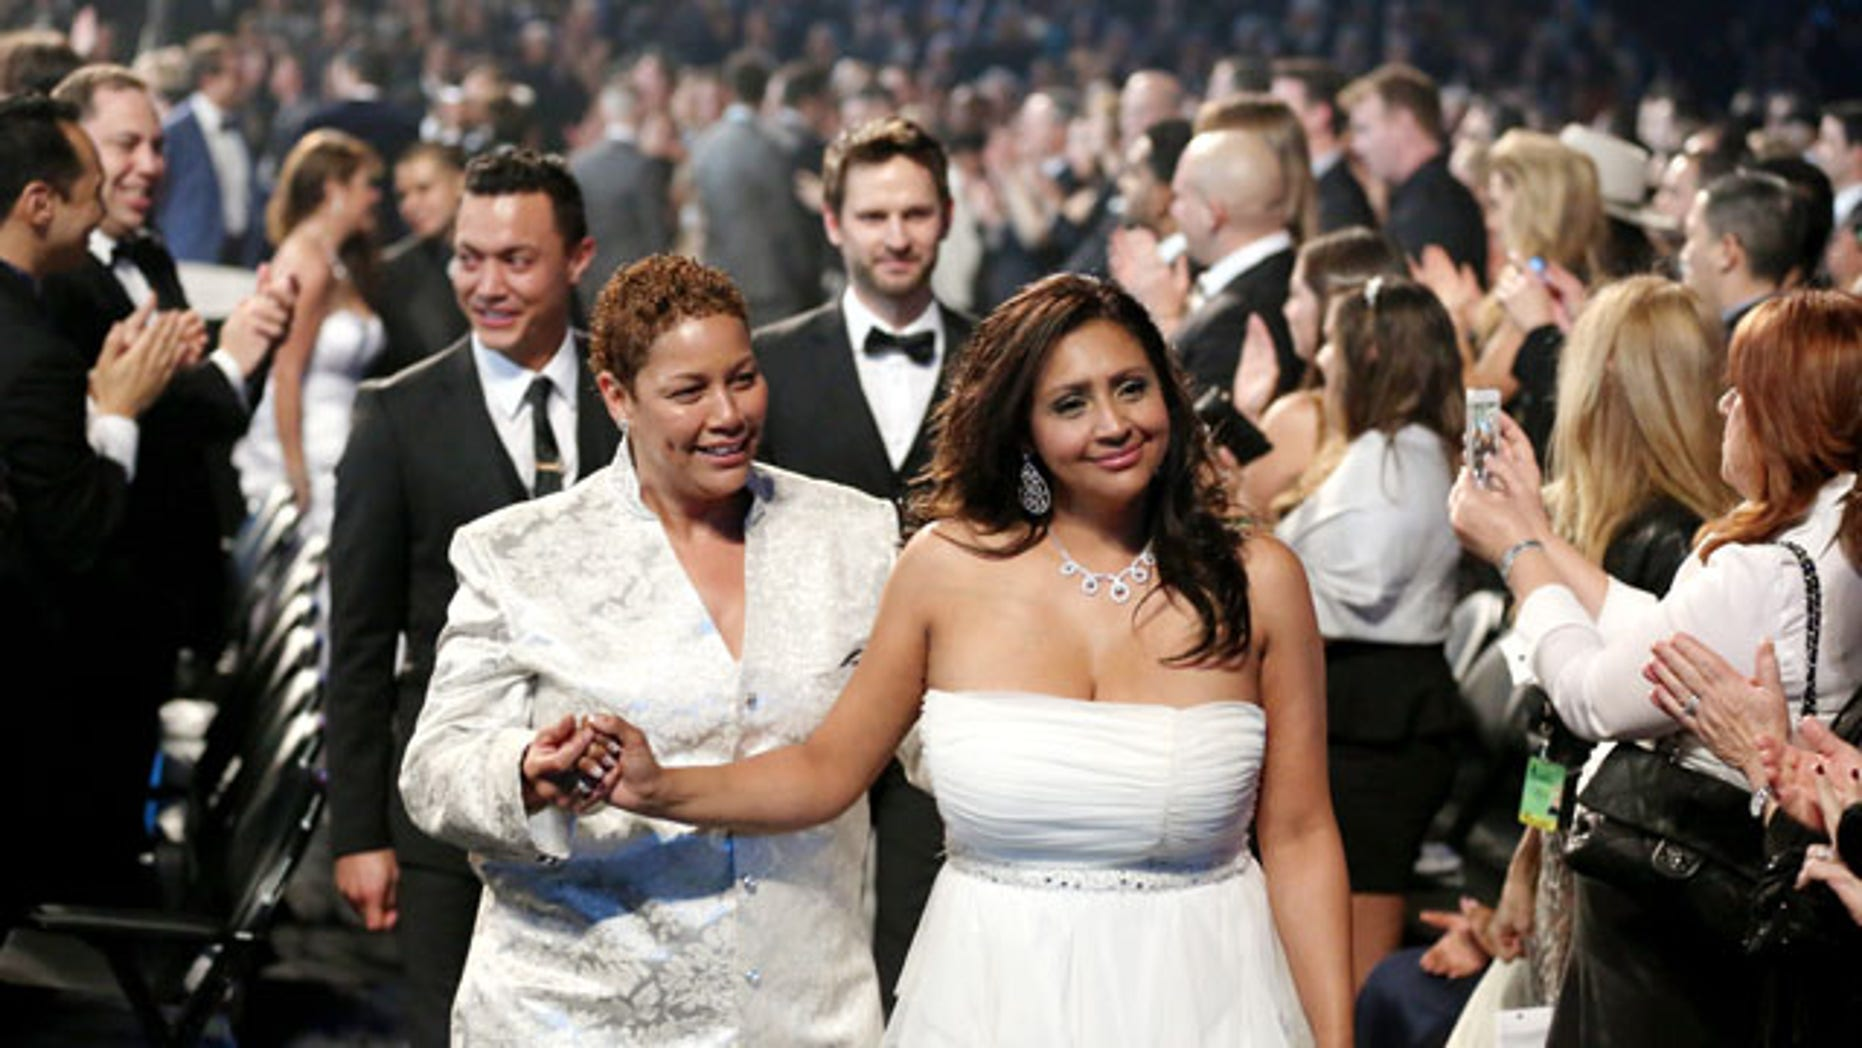 "January 26, 2014: Audience members participate in a same sex wedding during a performance of ""Same Love"" by Macklemore and Ryan Lewis at the 56th annual Grammy Awards at Staples Center in Los Angeles. With Queen Latifah presiding from the stage and the music playing, 33 straight and gay couples lined the aisle dressed in wedding finery. Under Latifah's command, they exchanged rings near the end of Sunday night's show televised on CBS. (Photo by Matt Sayles/Invision/AP)"